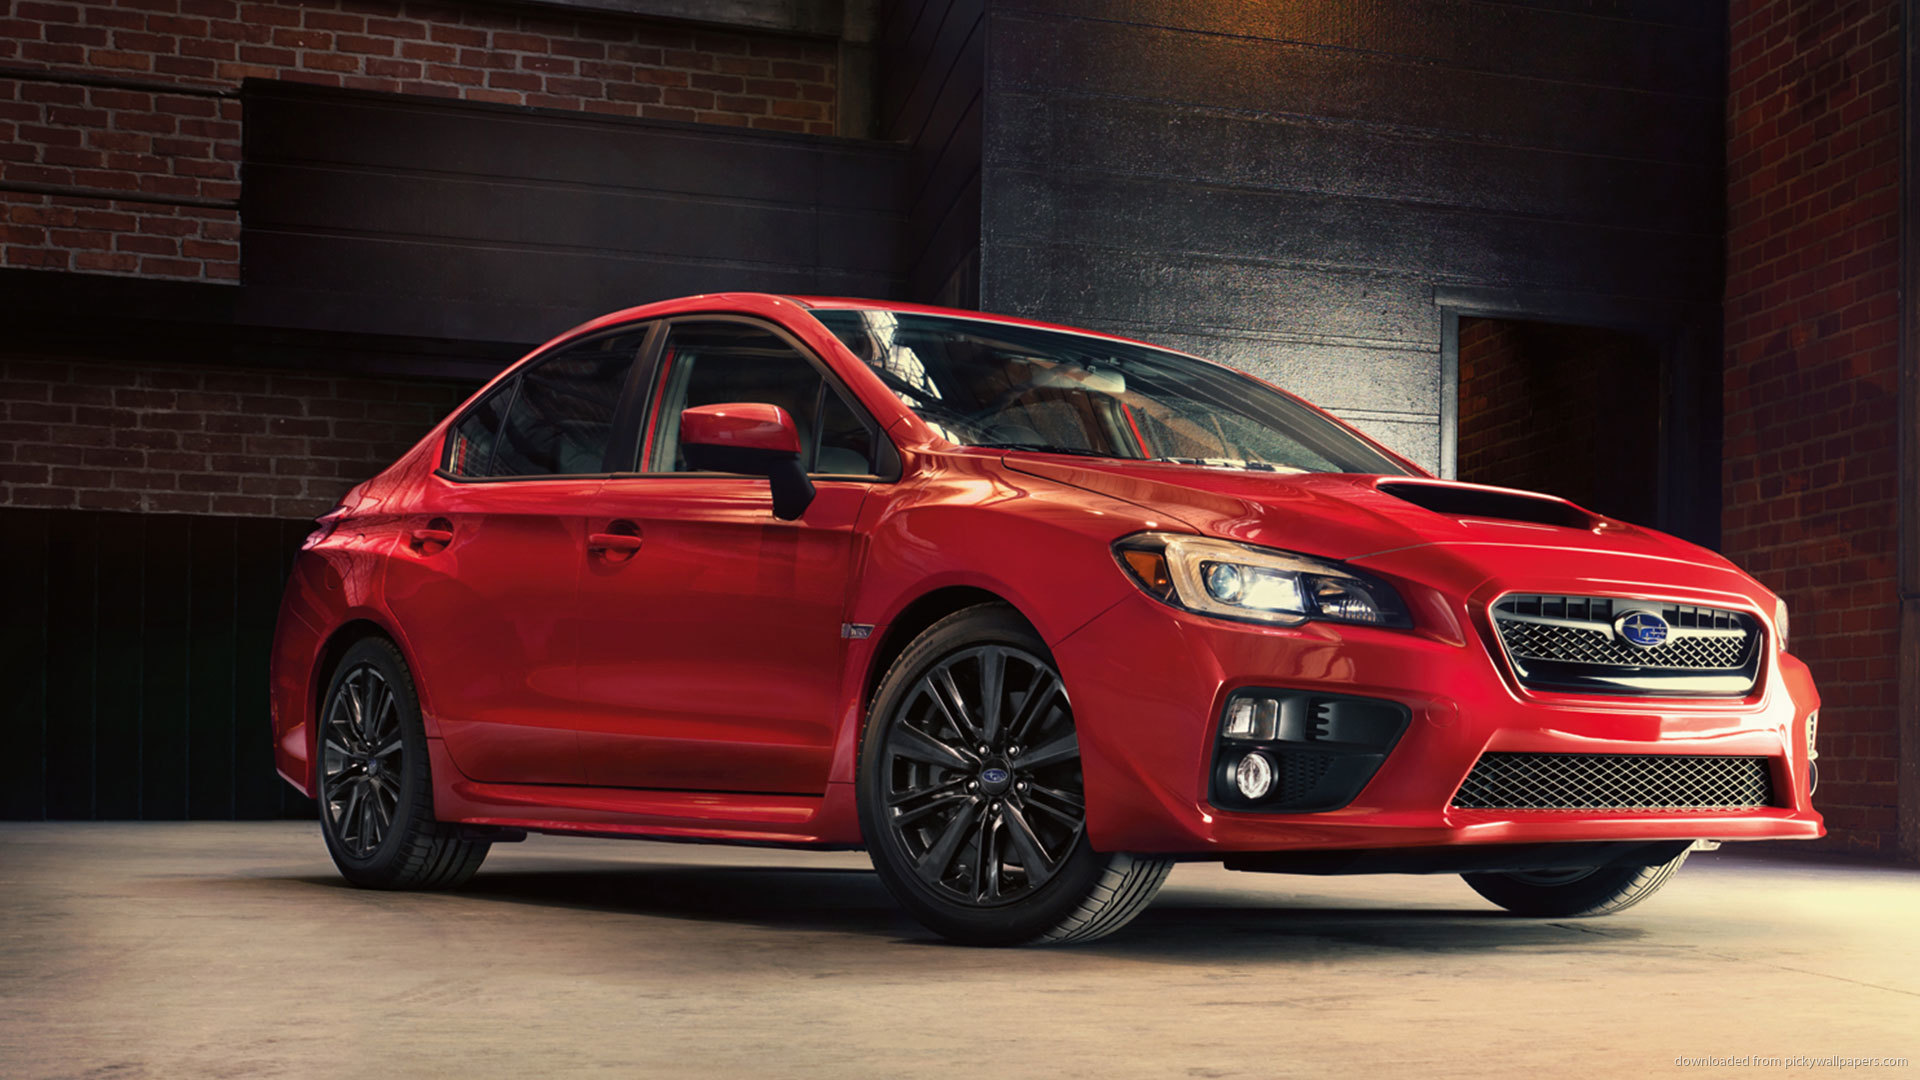 Free Download 2015 Red Subaru Wrx Sti Wallpaper Picture For Iphone